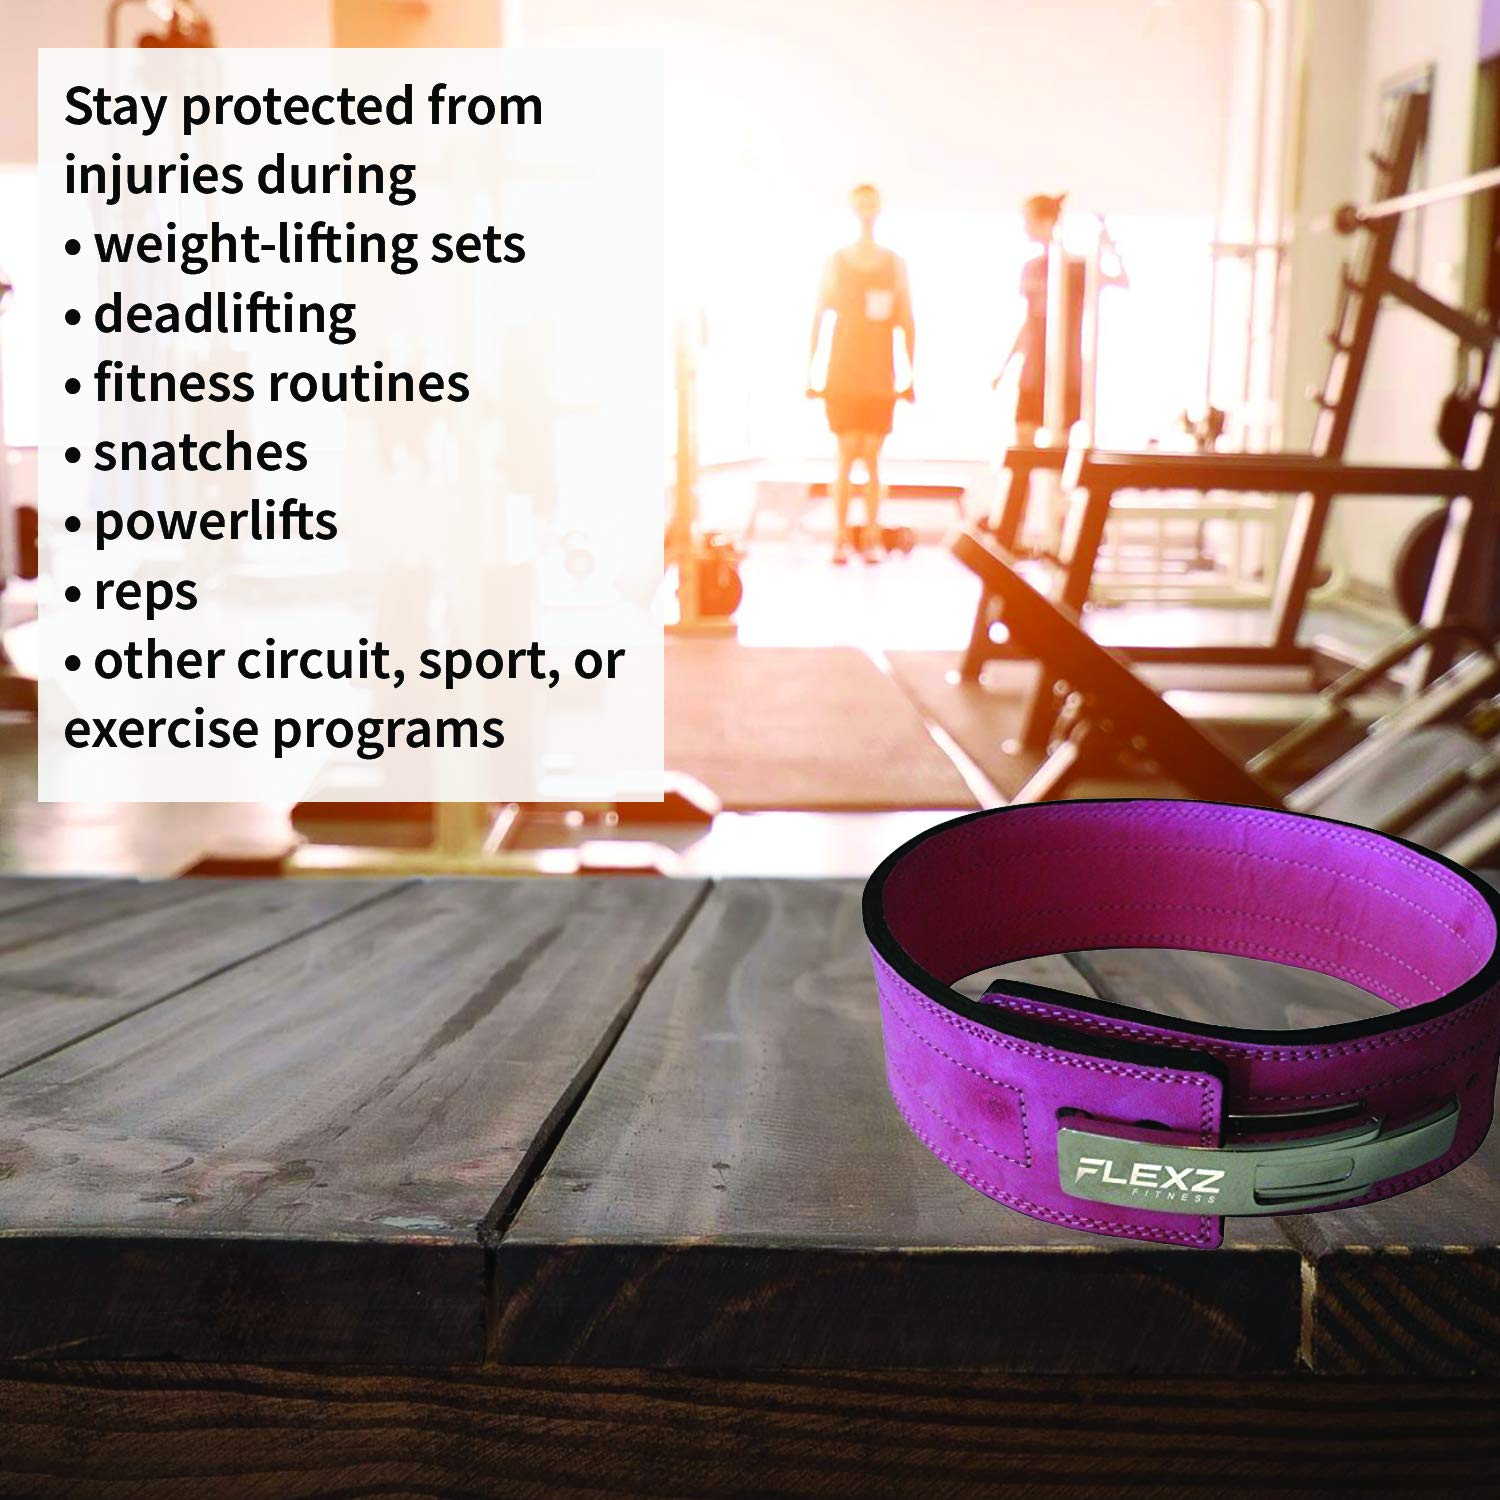 Flexz Fitness Lever Buckle Powerlifting Belt 10mm Weight Lifting Pink Small by Flexz Fitness (Image #5)